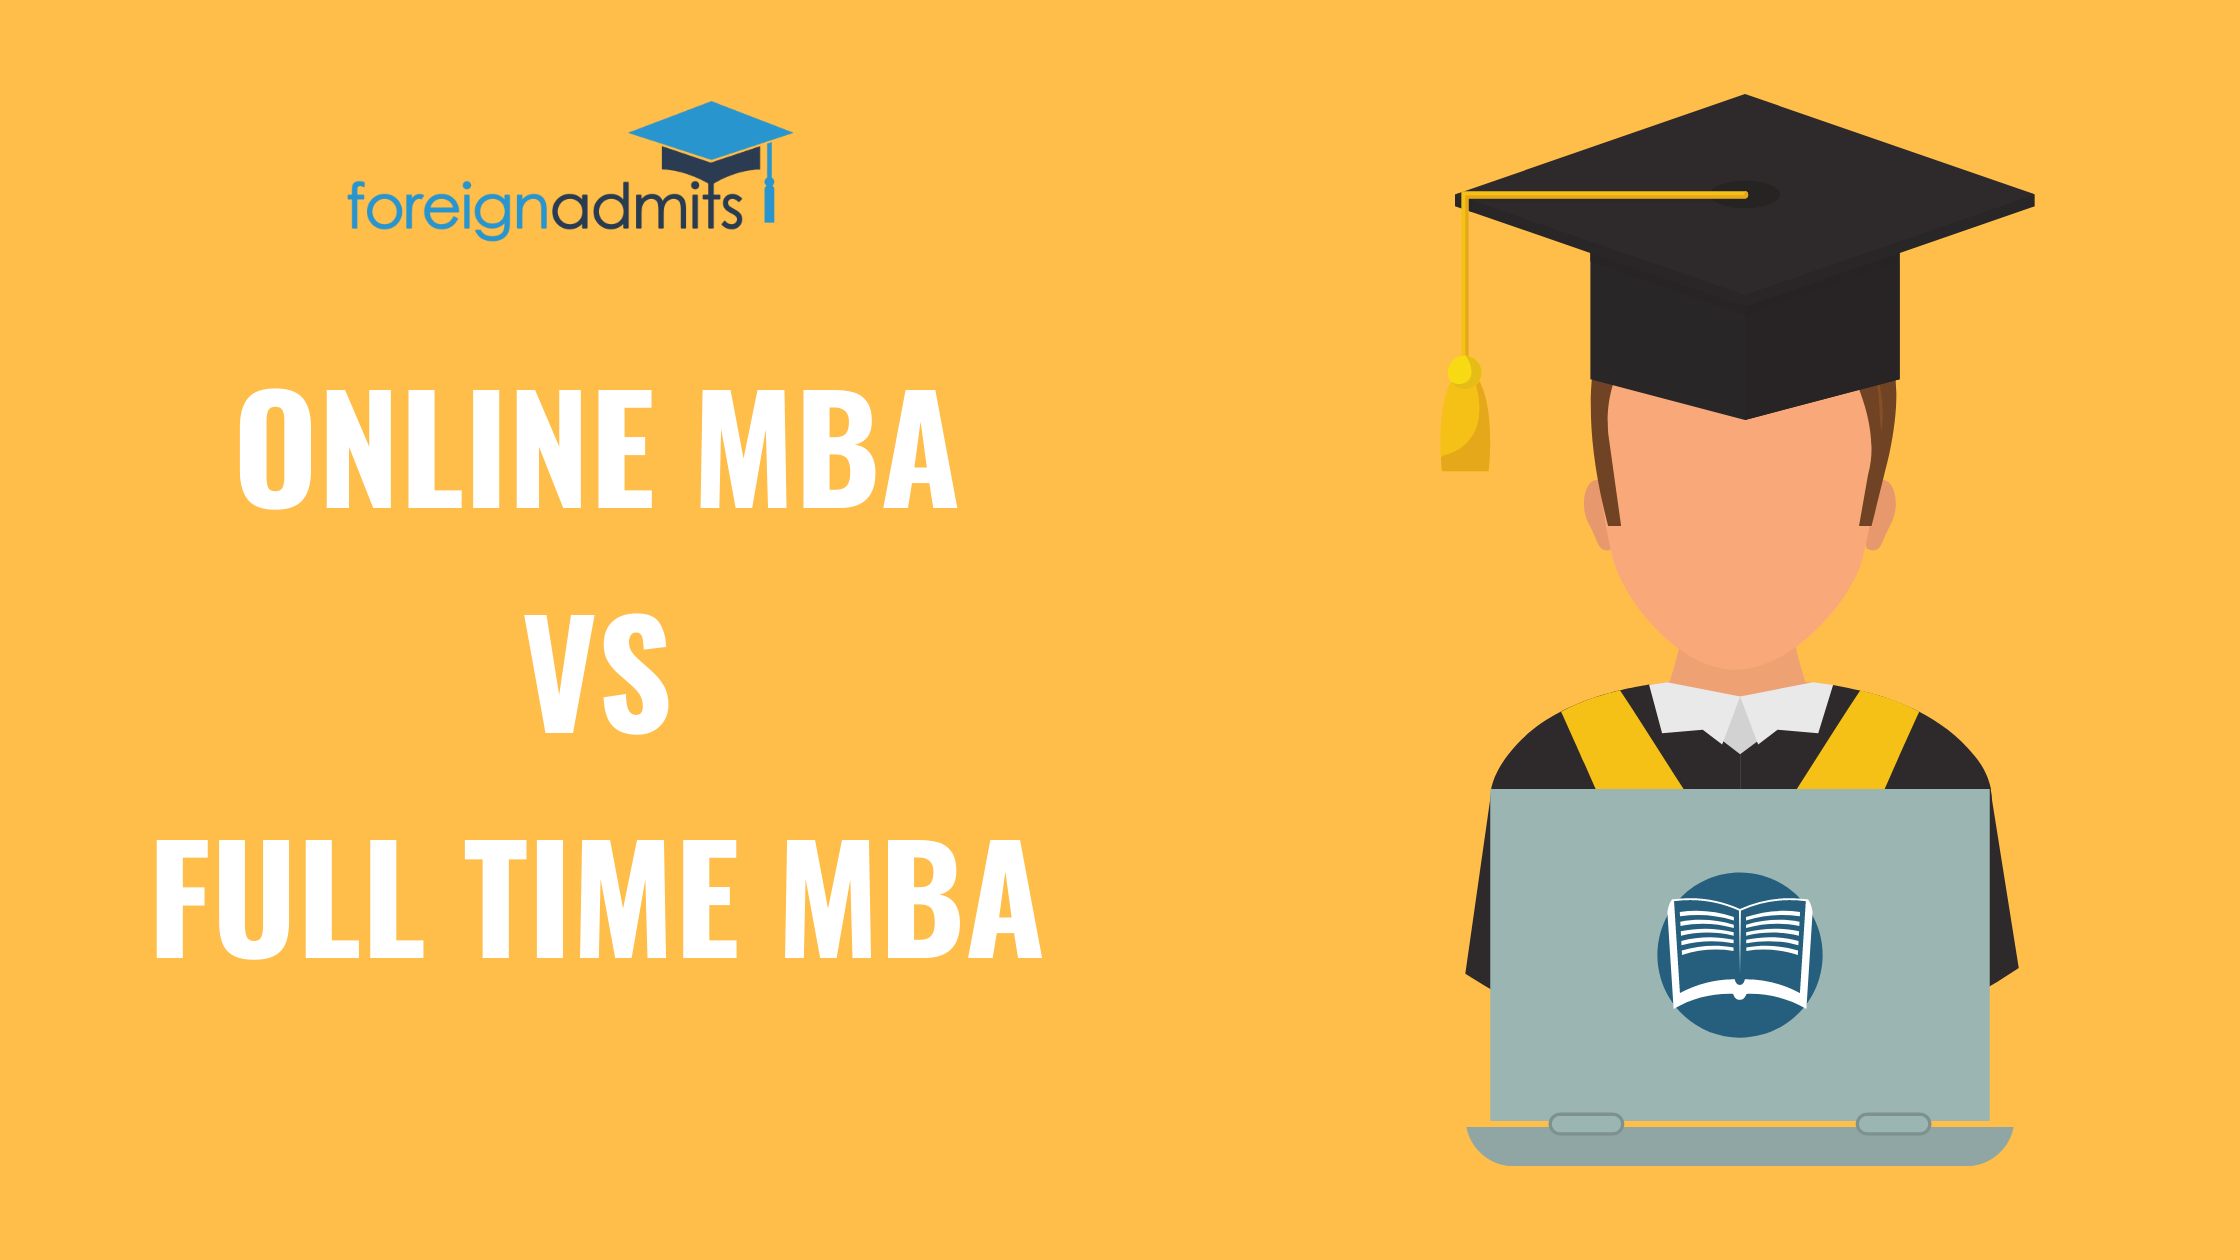 Online MBA vs Full Time MBA